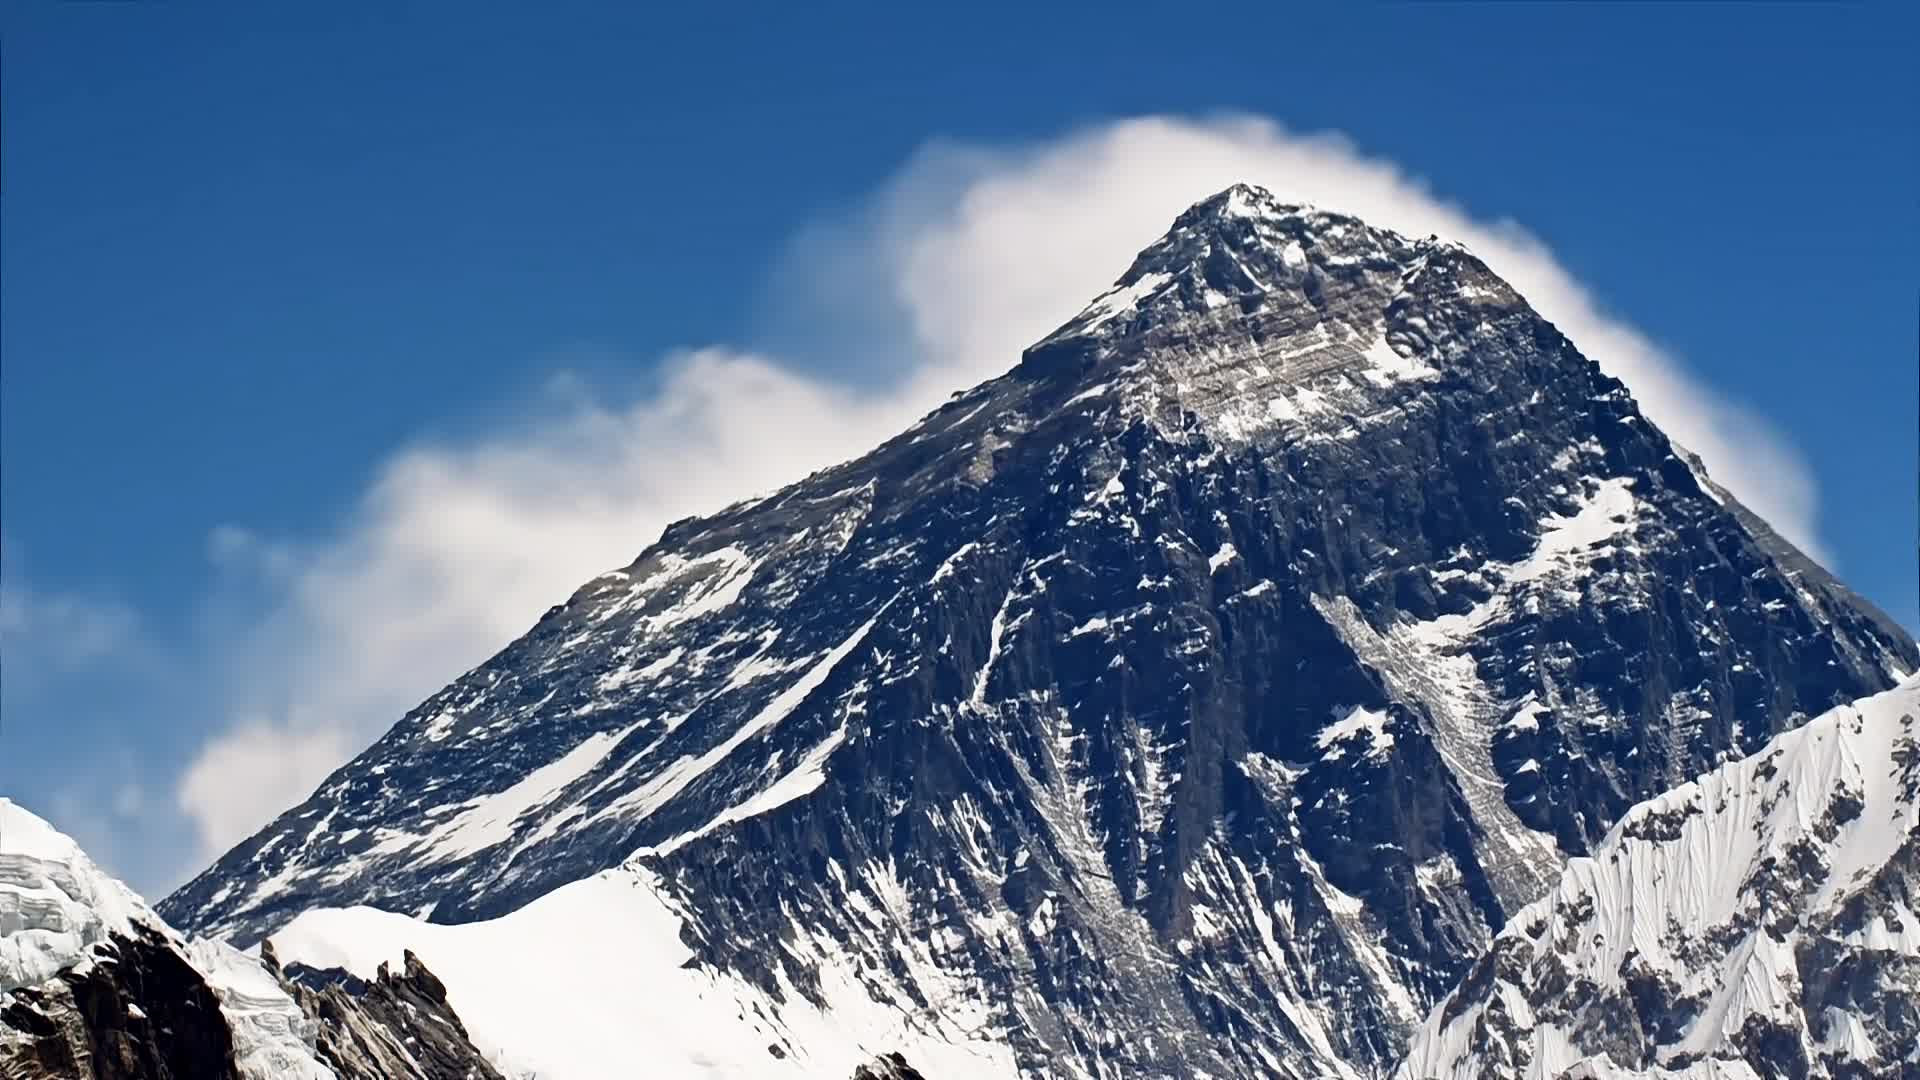 mount everest, mountain, mountains, nature, Mount Everest Cinemagraph GIFs